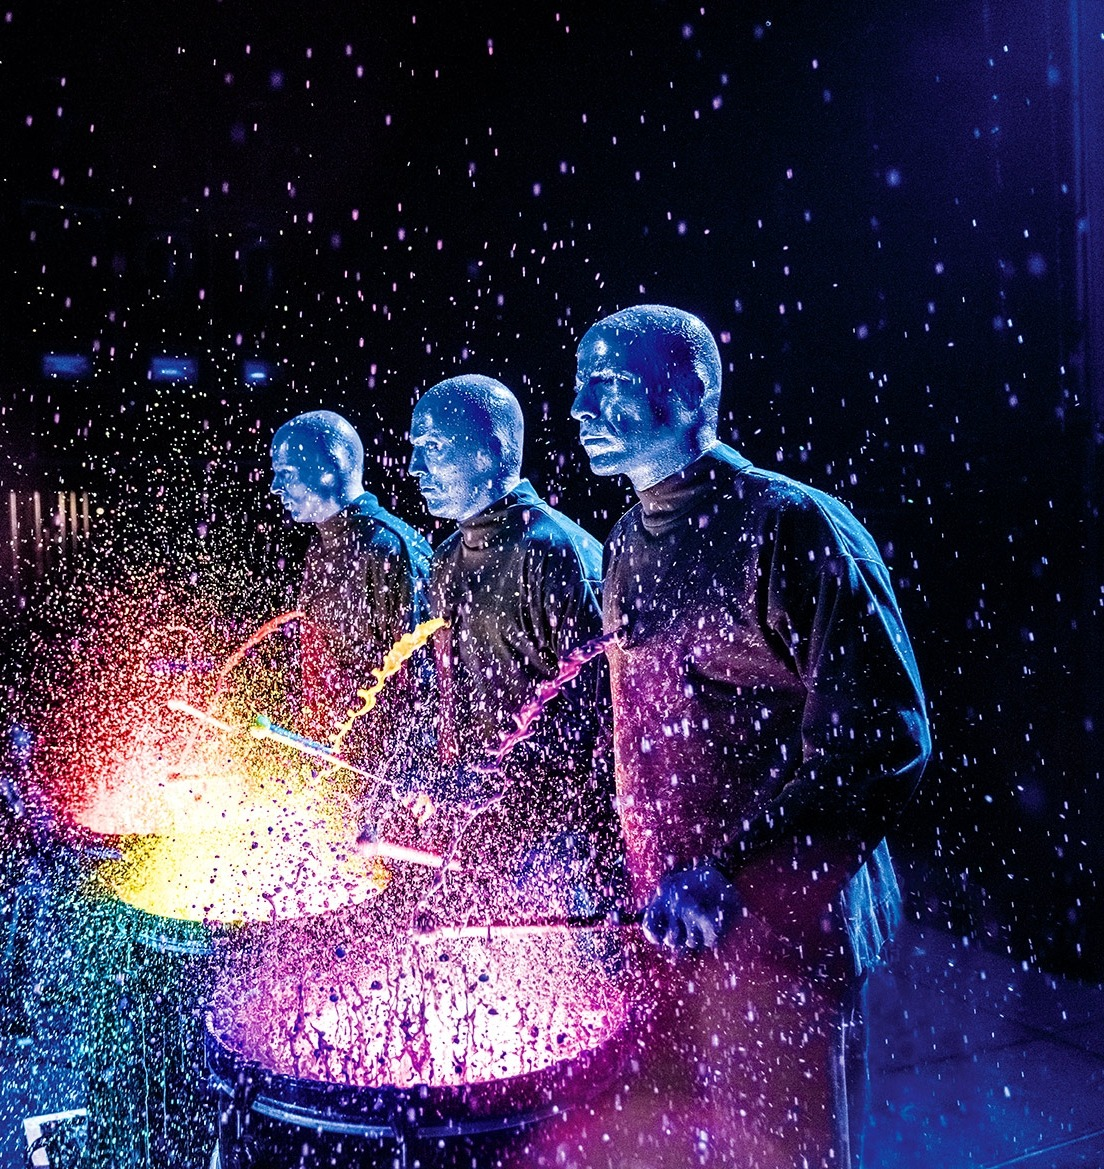 Blue Man Group playing paint drums